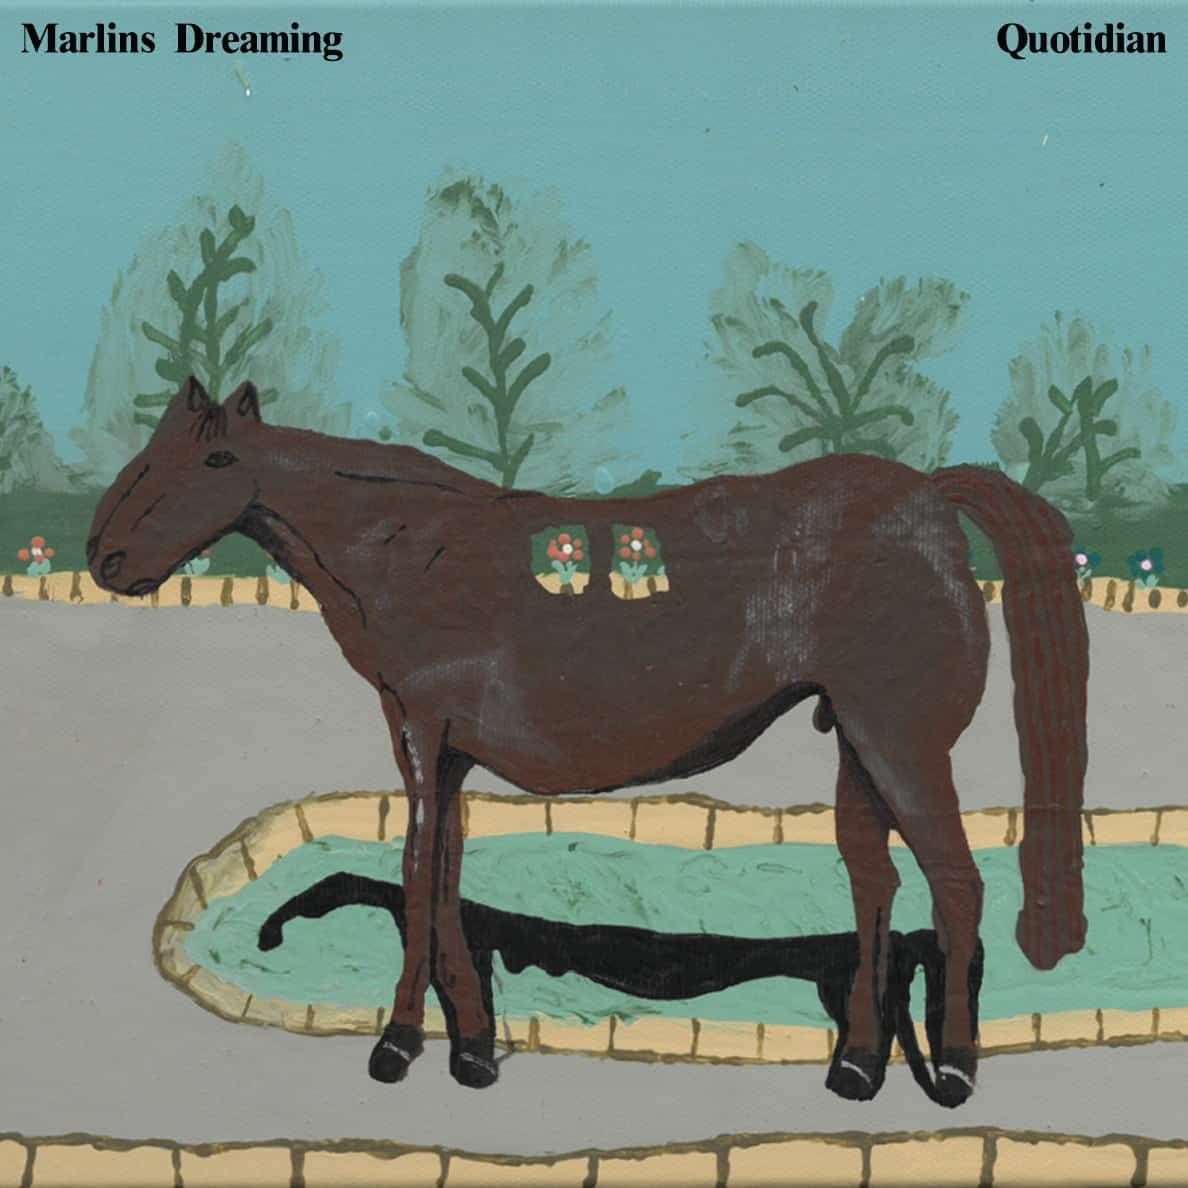 Quotidian - Marlin's Dreaming